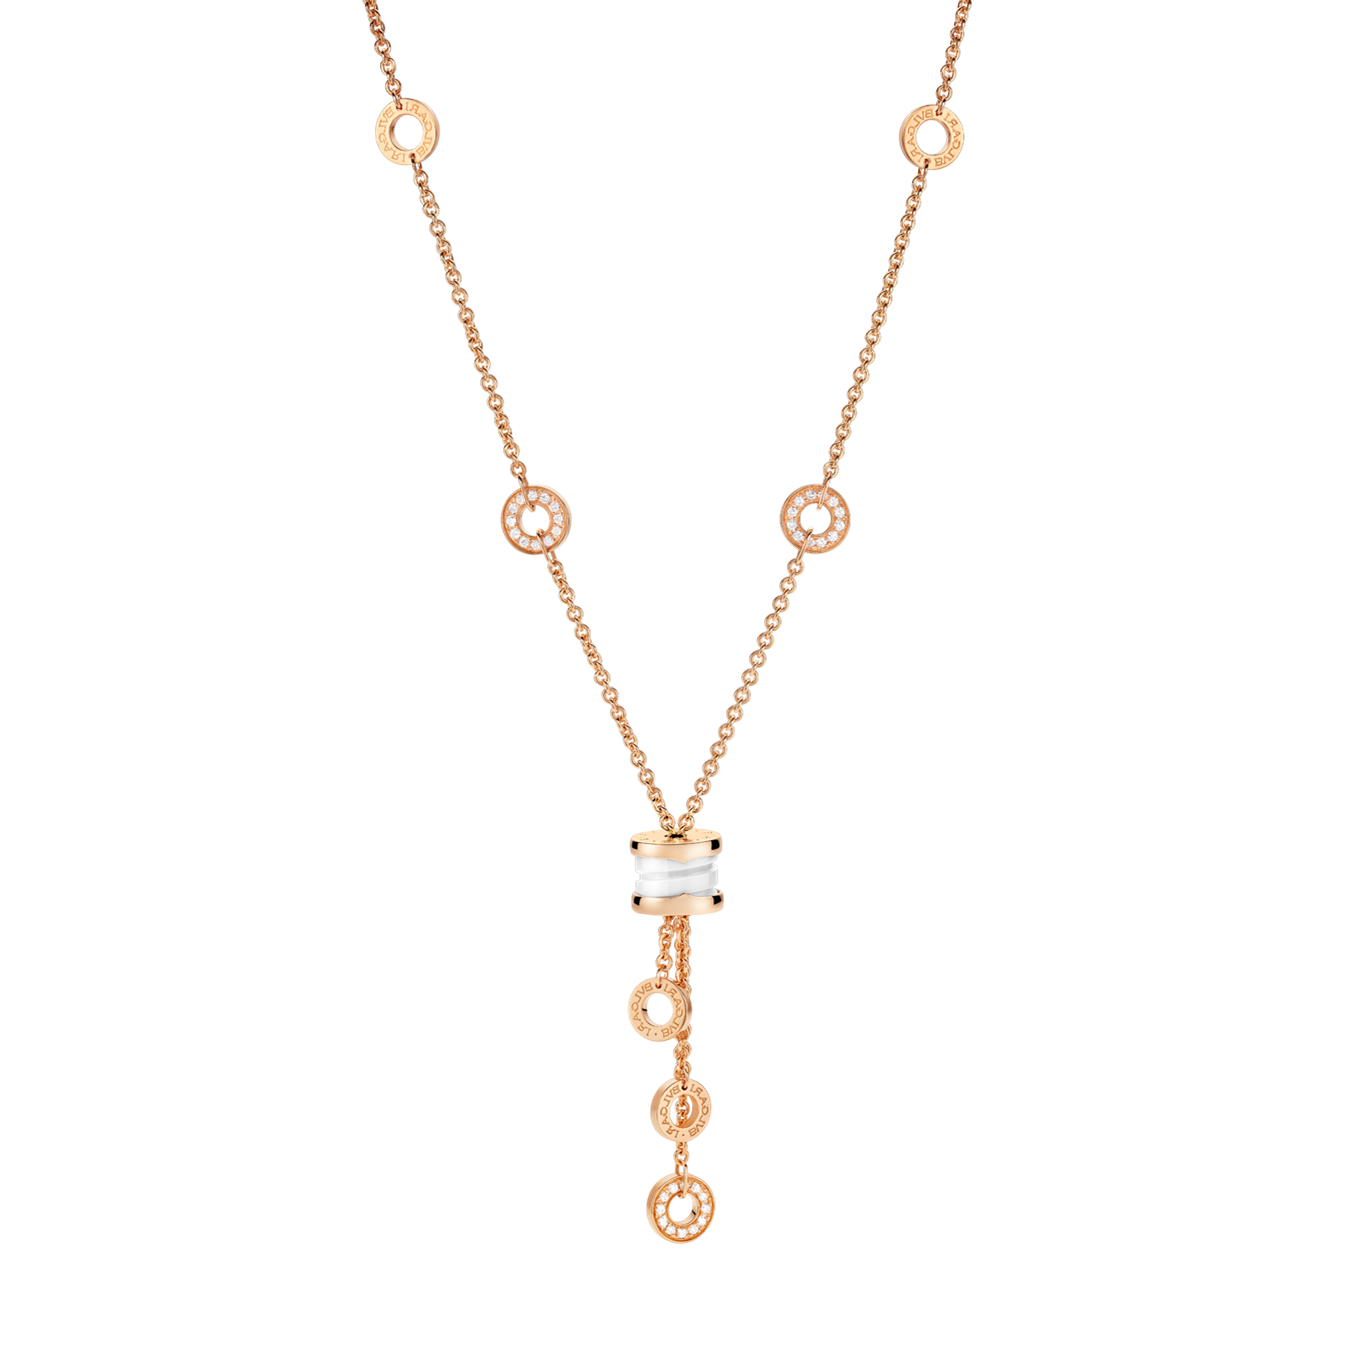 Bvlgari B.ZERO1 fake necklace pink gold white ceramic pendant